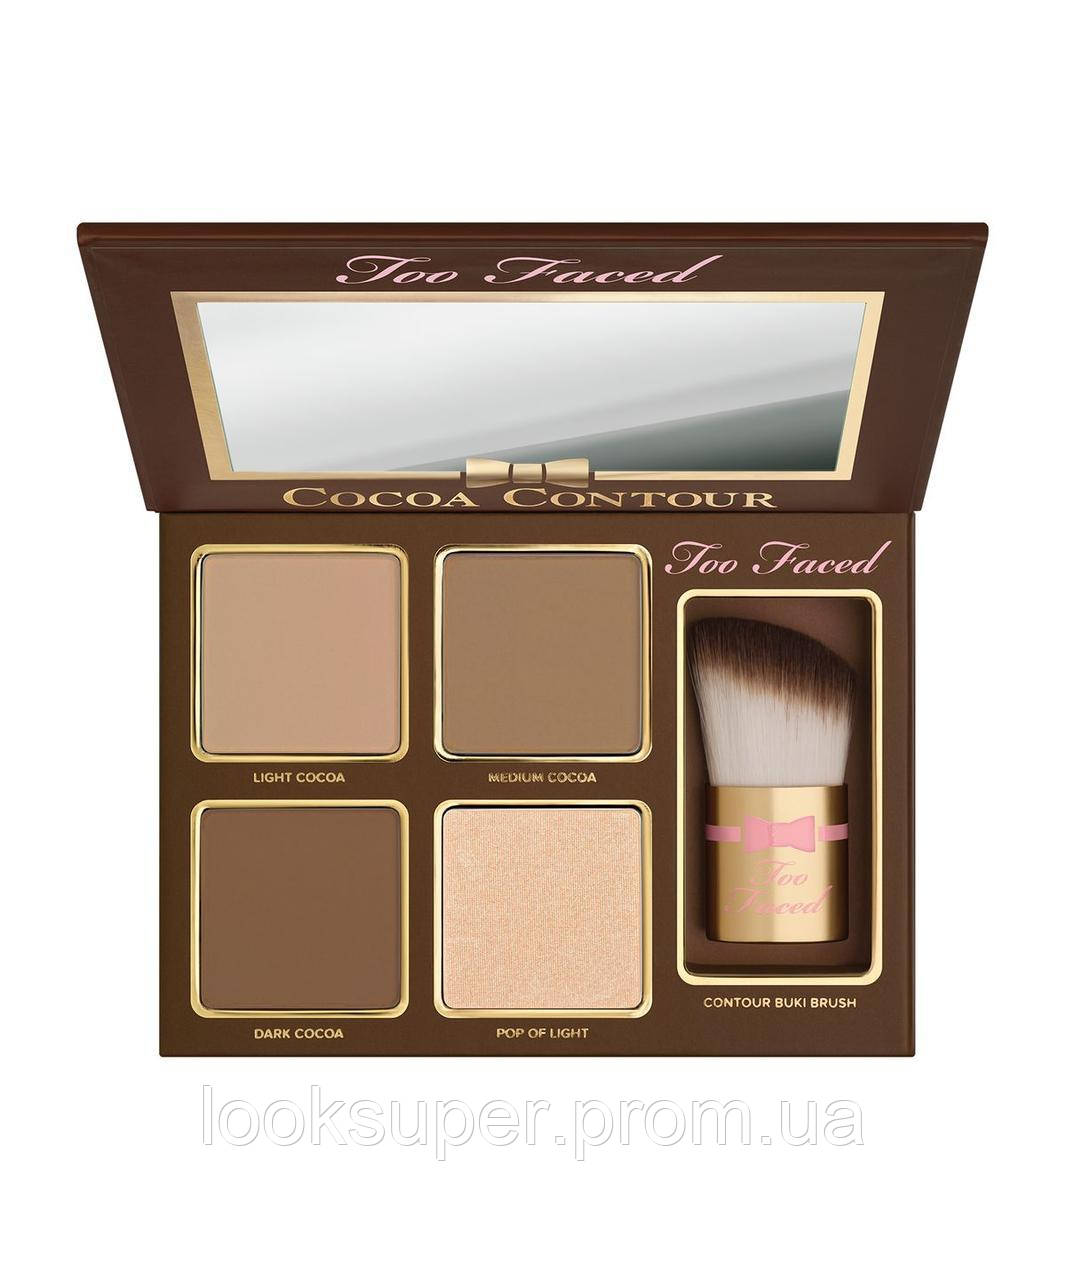 Палетка для контурирования лица  Too Faced   Cocoa Contour